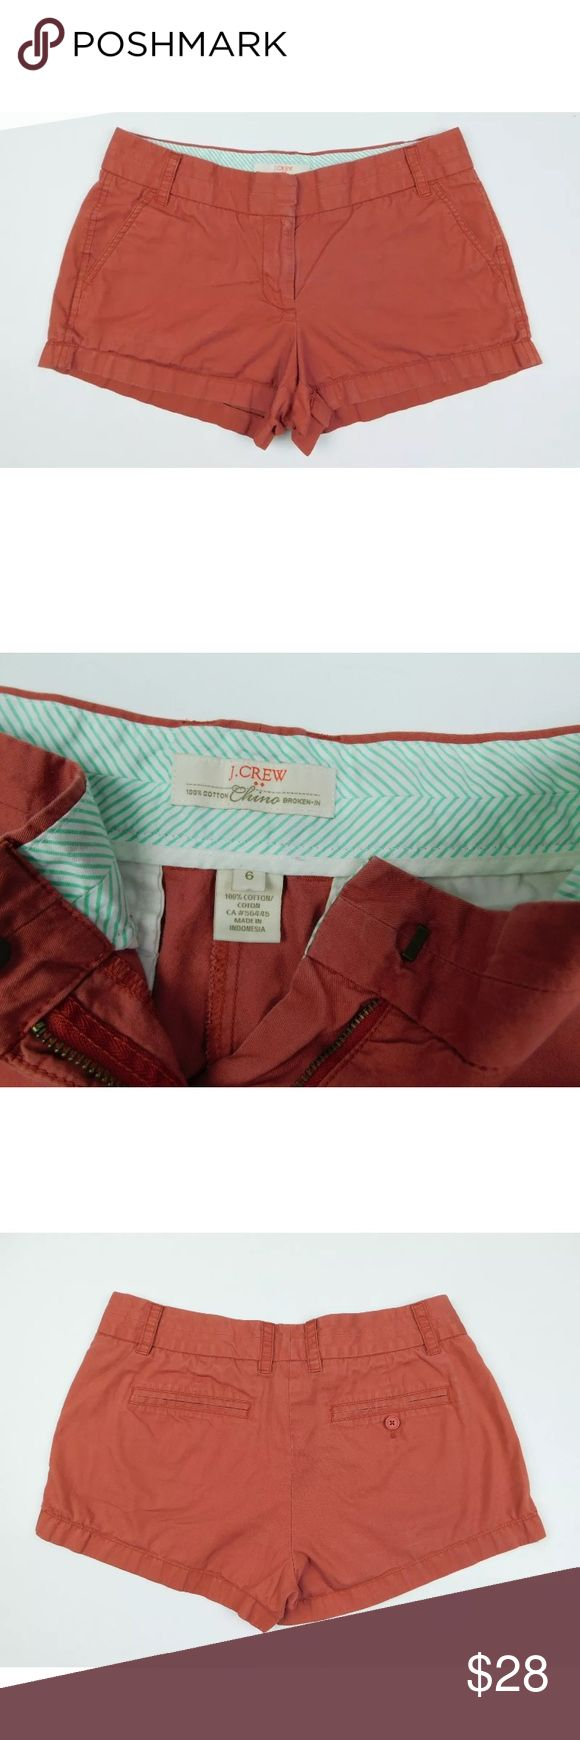 🌼J. Crew🌼 Chino Broken In Faded Red Pants Sz 6 Excellent used condition. Perfect for spring and summer days. Feel free to make an offer or bundle and save! J. Crew Shorts Bermudas